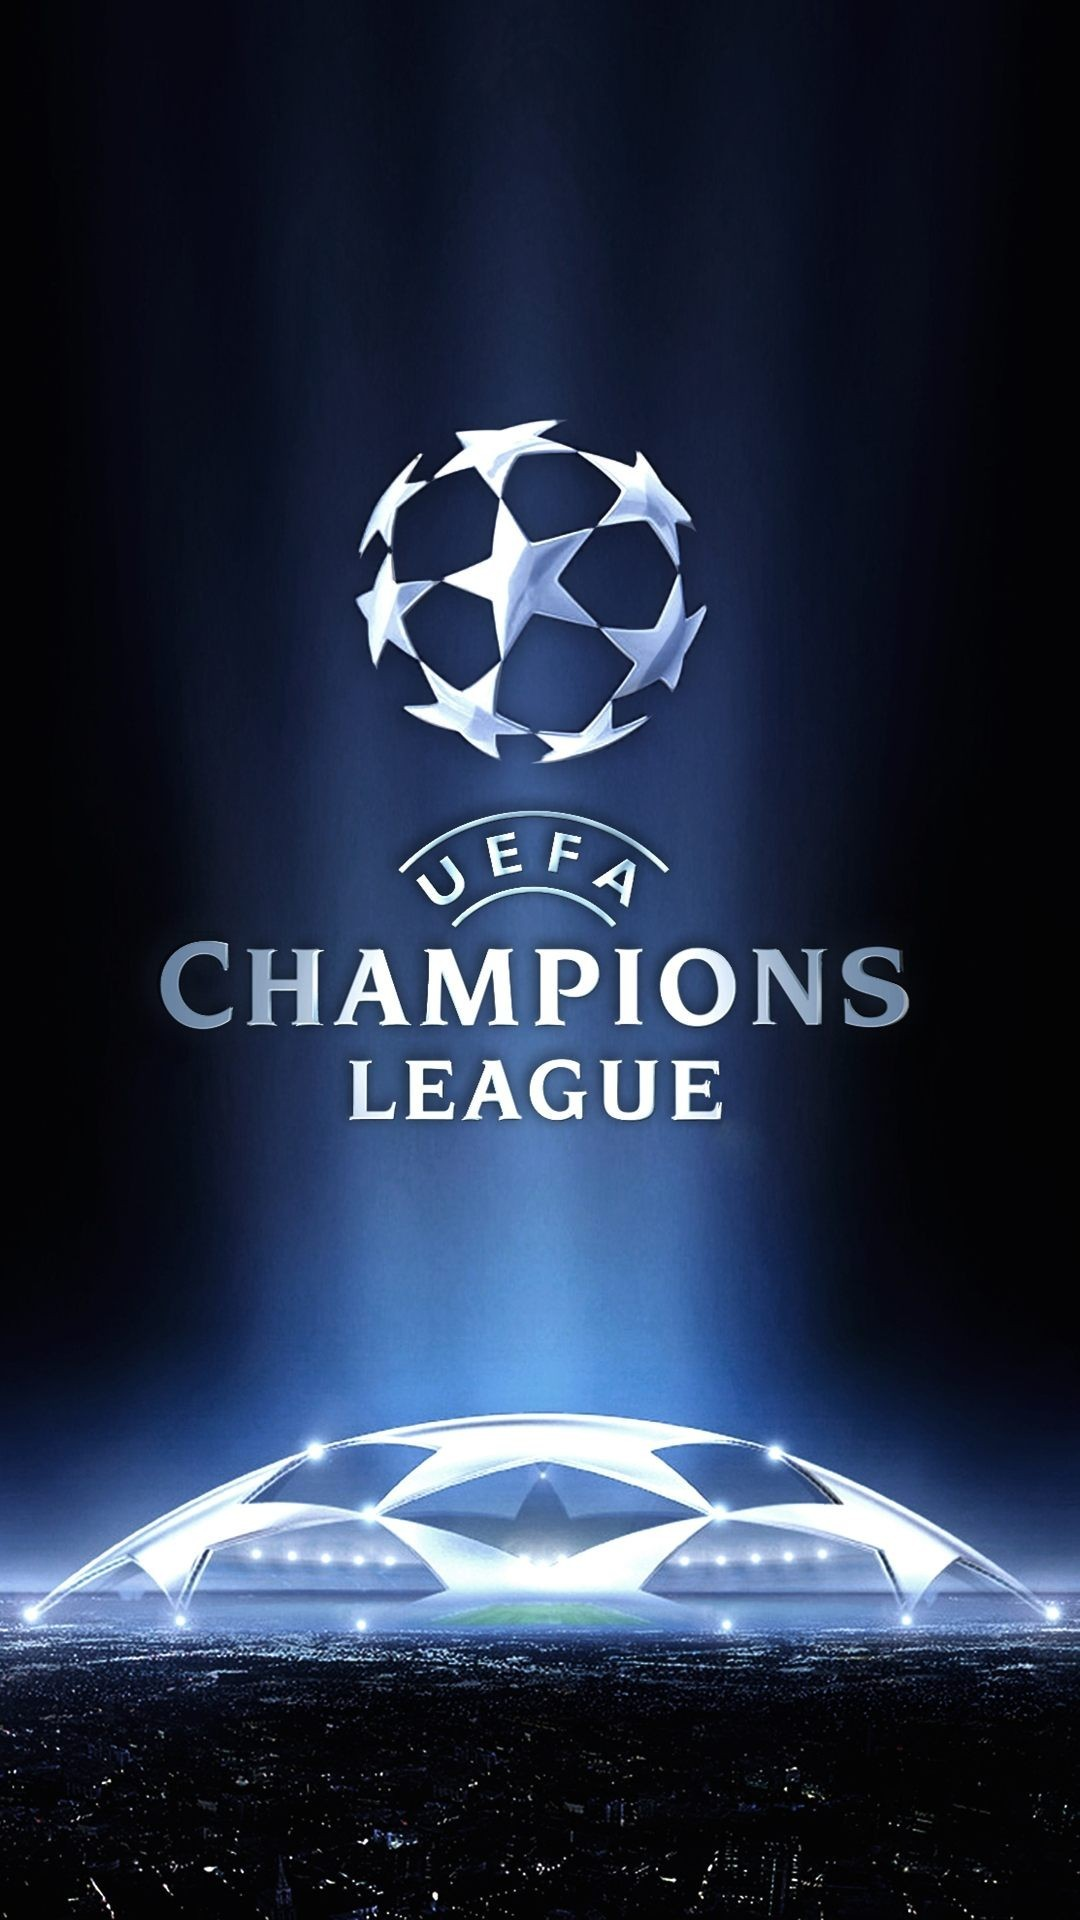 Soccer Wallpaper Iphone Posted By Zoey Anderson